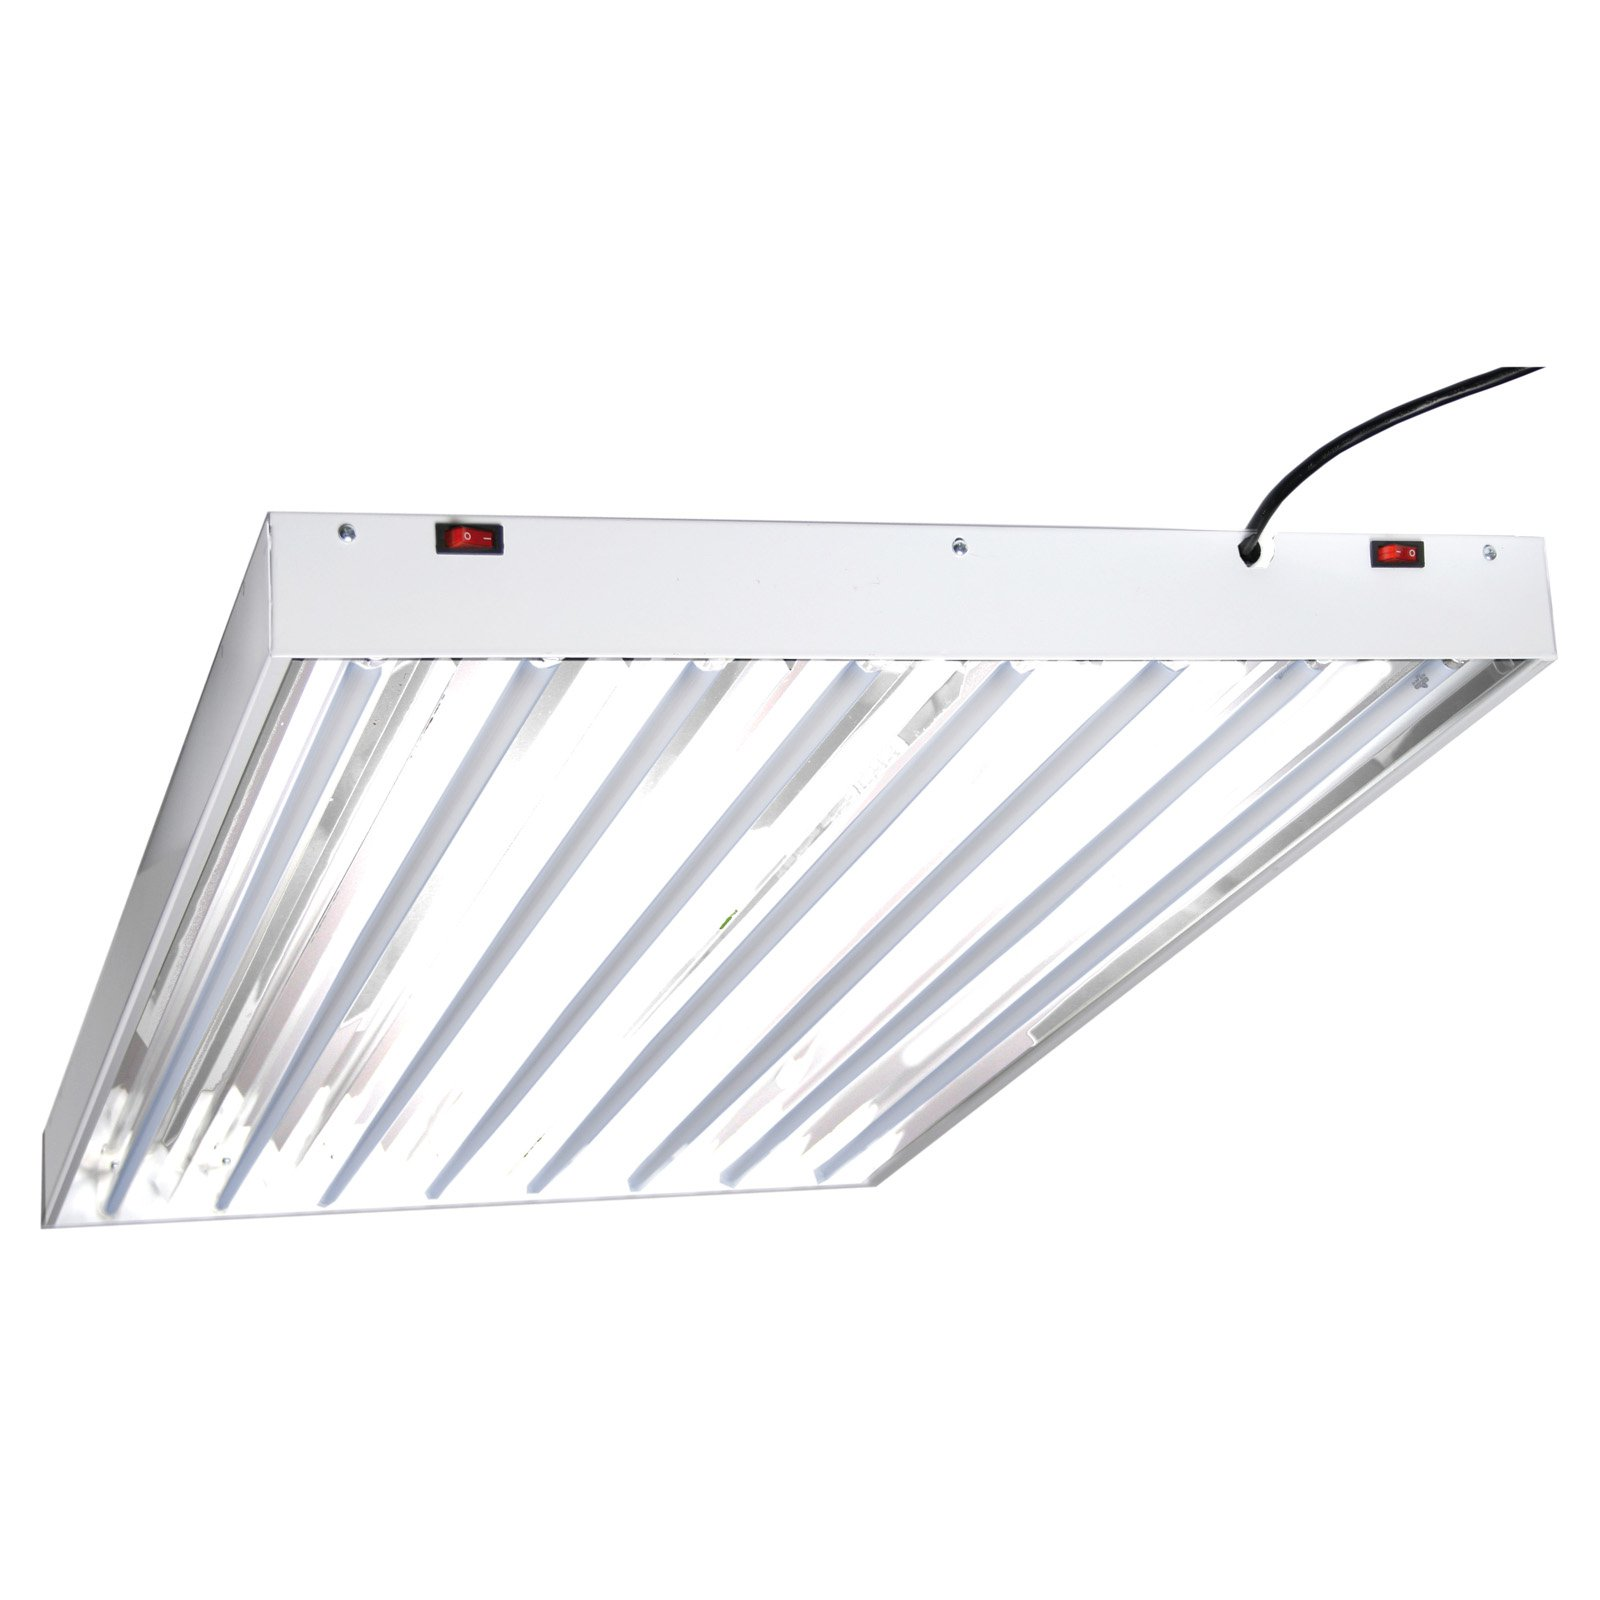 Hydrofarm Designer T5 System 4 Foot 8 Tube Fluorescent Grow Lights with Bulbs